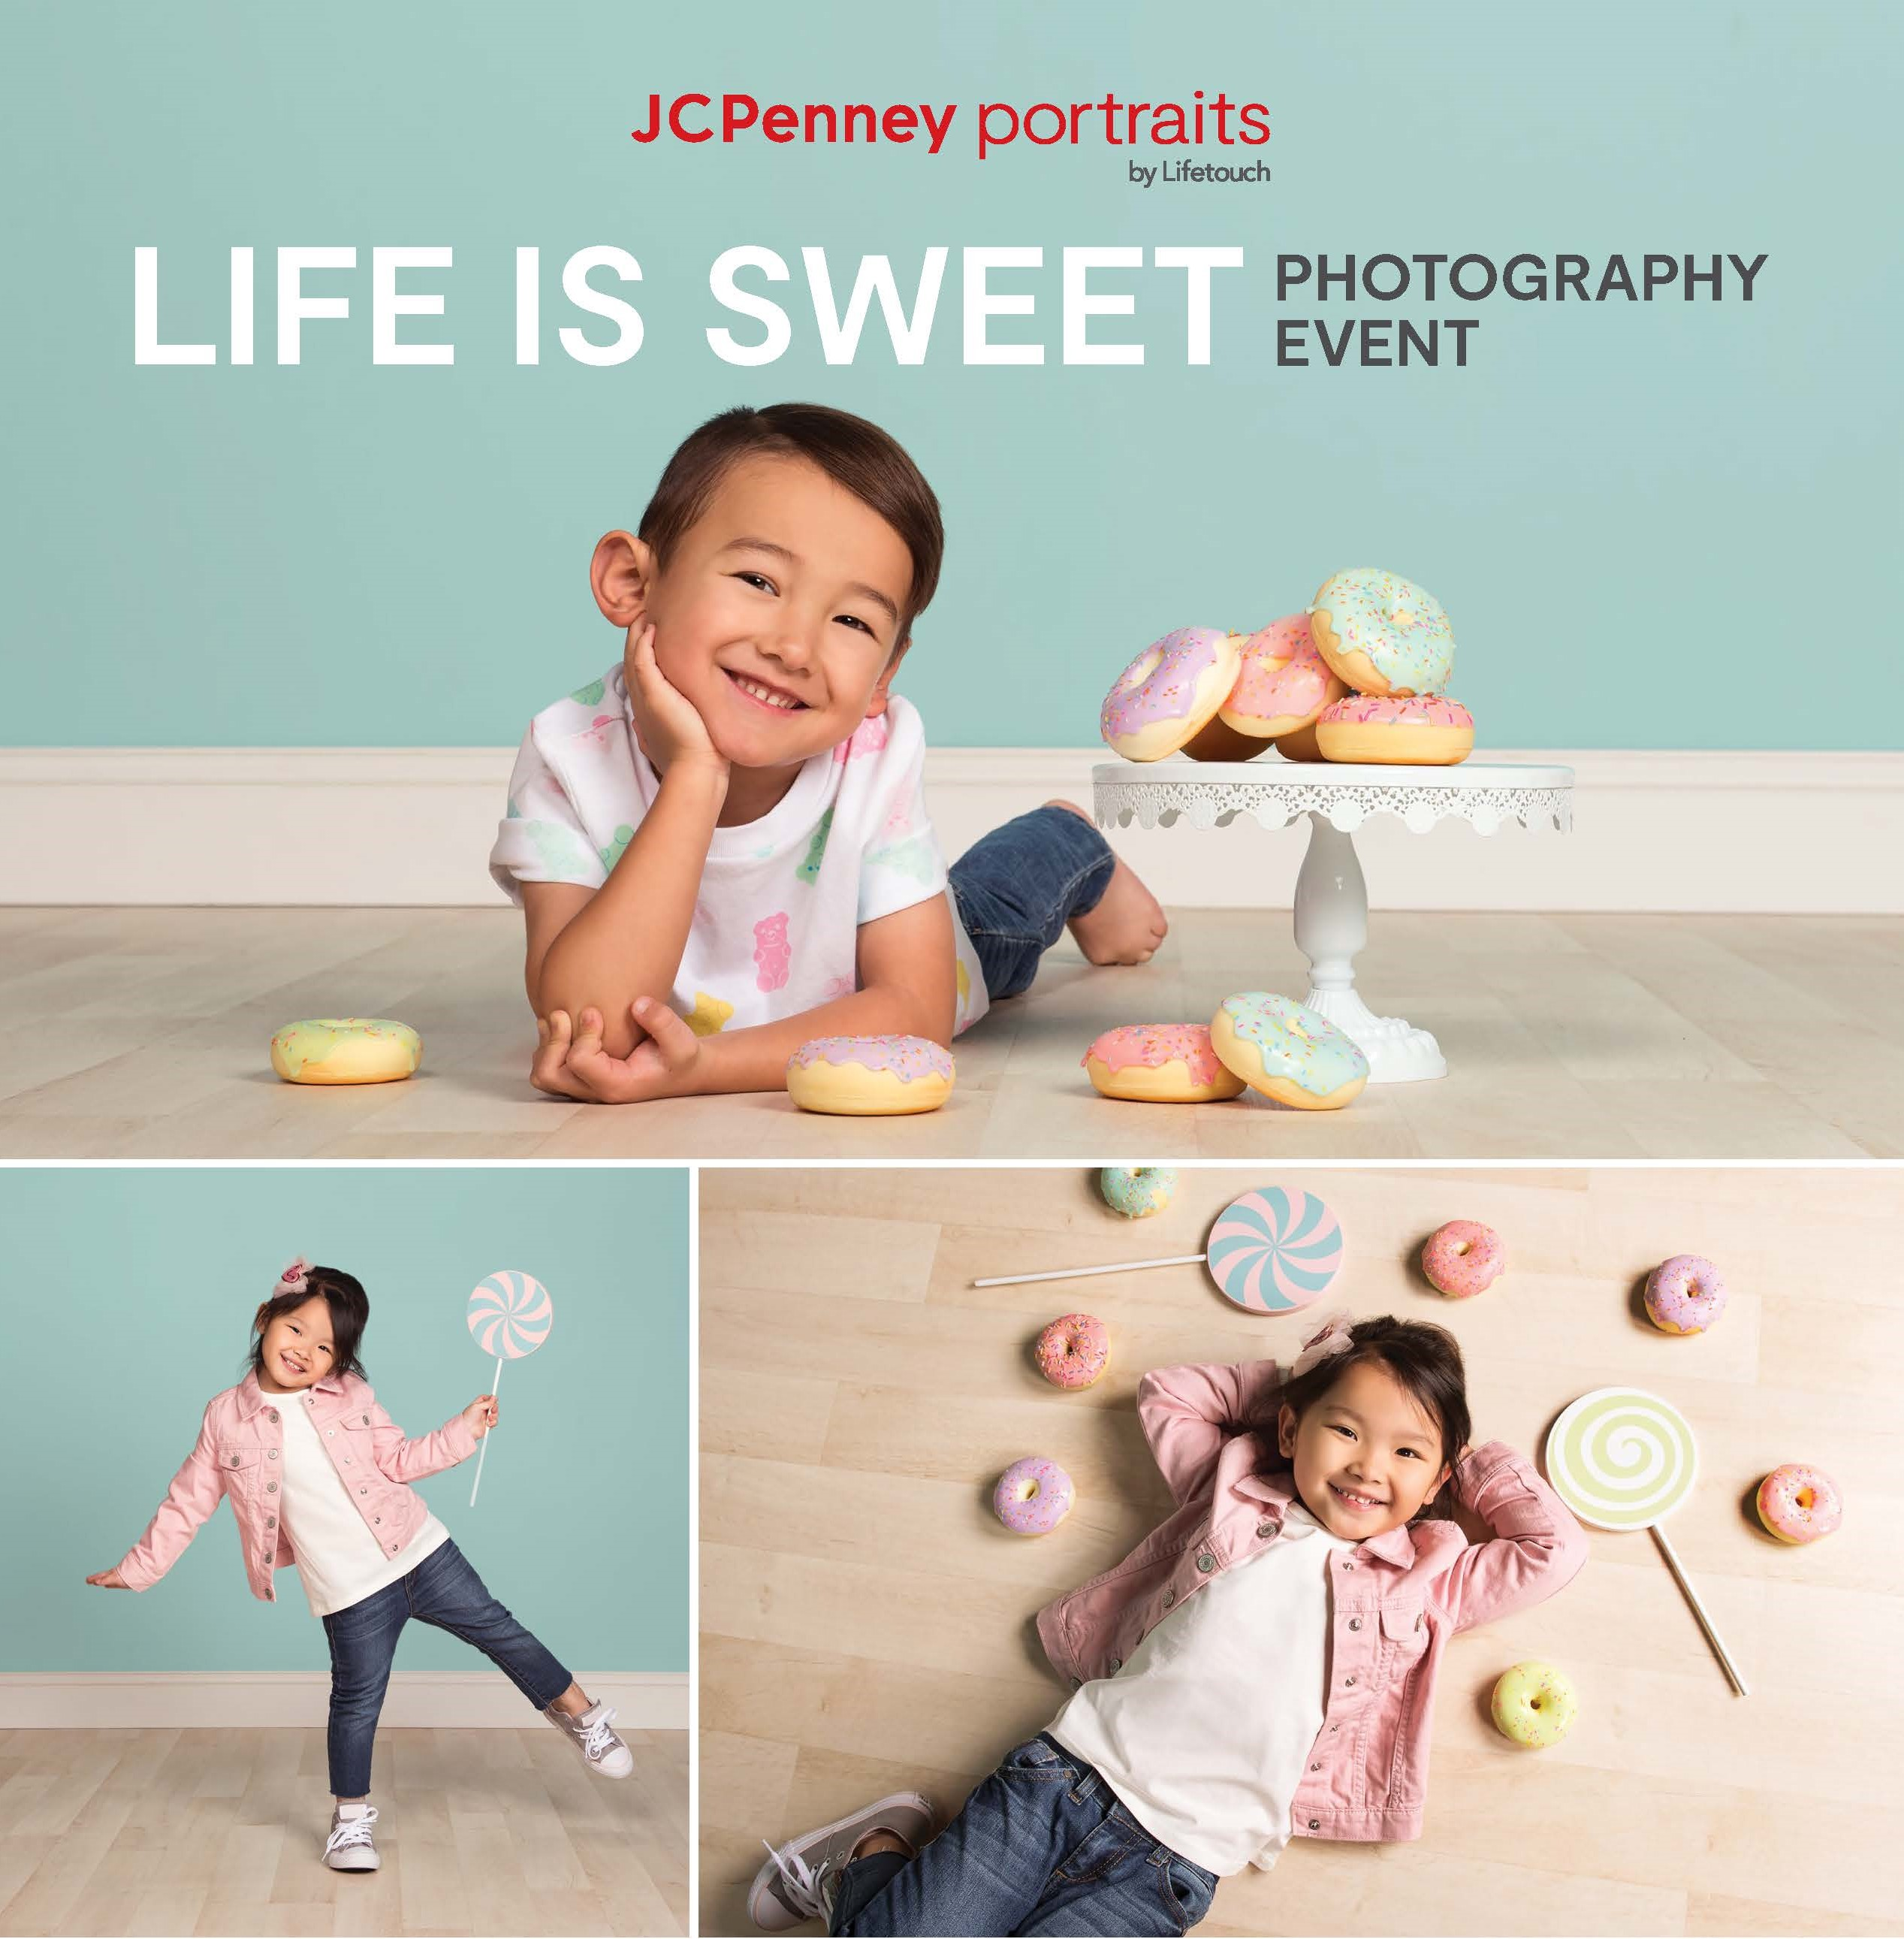 """JCPenney Portrait's """"Life is Sweet"""" photo event from Feb 27-March 1"""